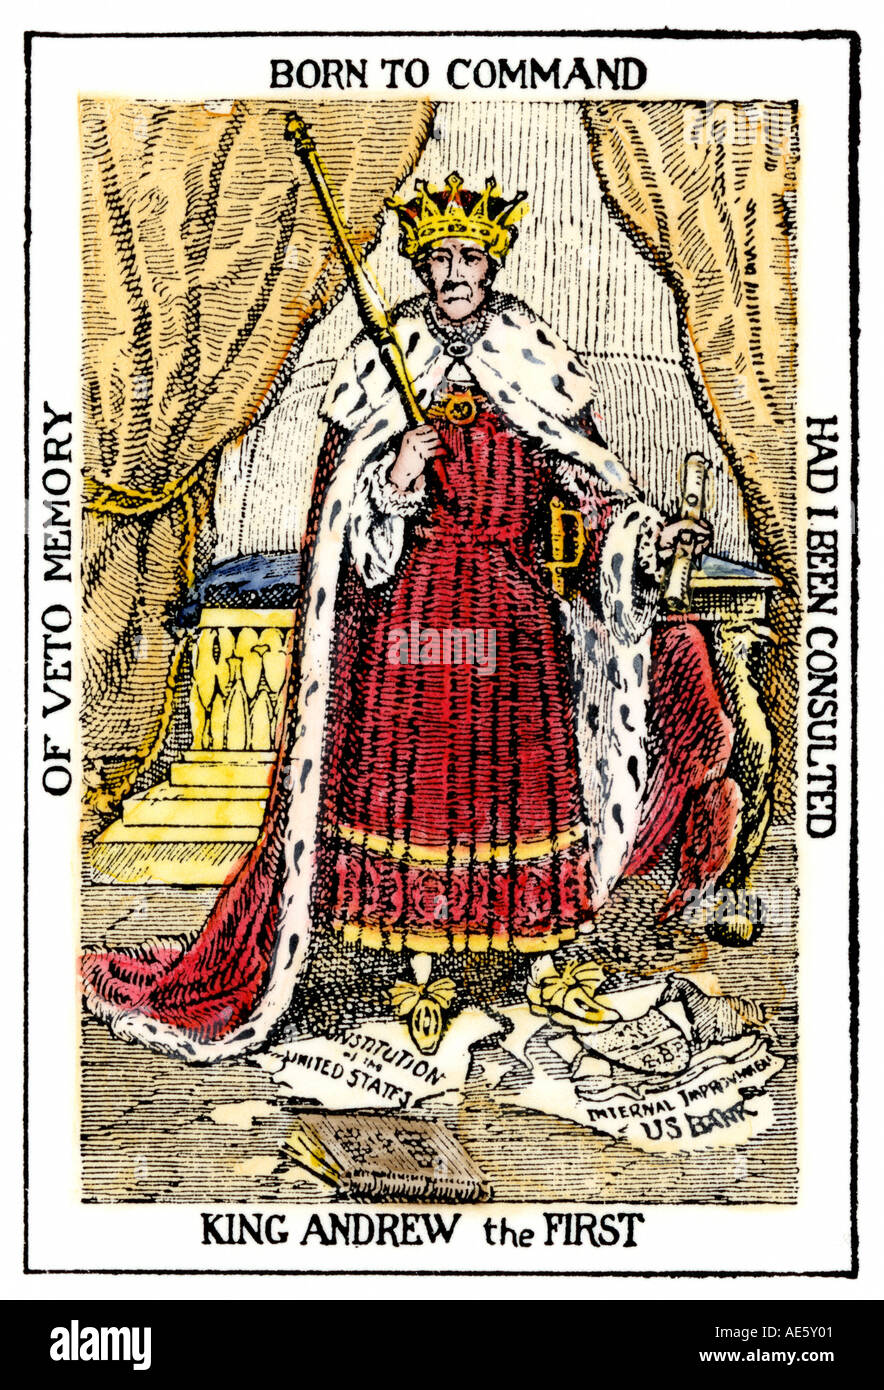 King Jackson Cartoon Of President Andrew Jackson As King Andrew The First Stock